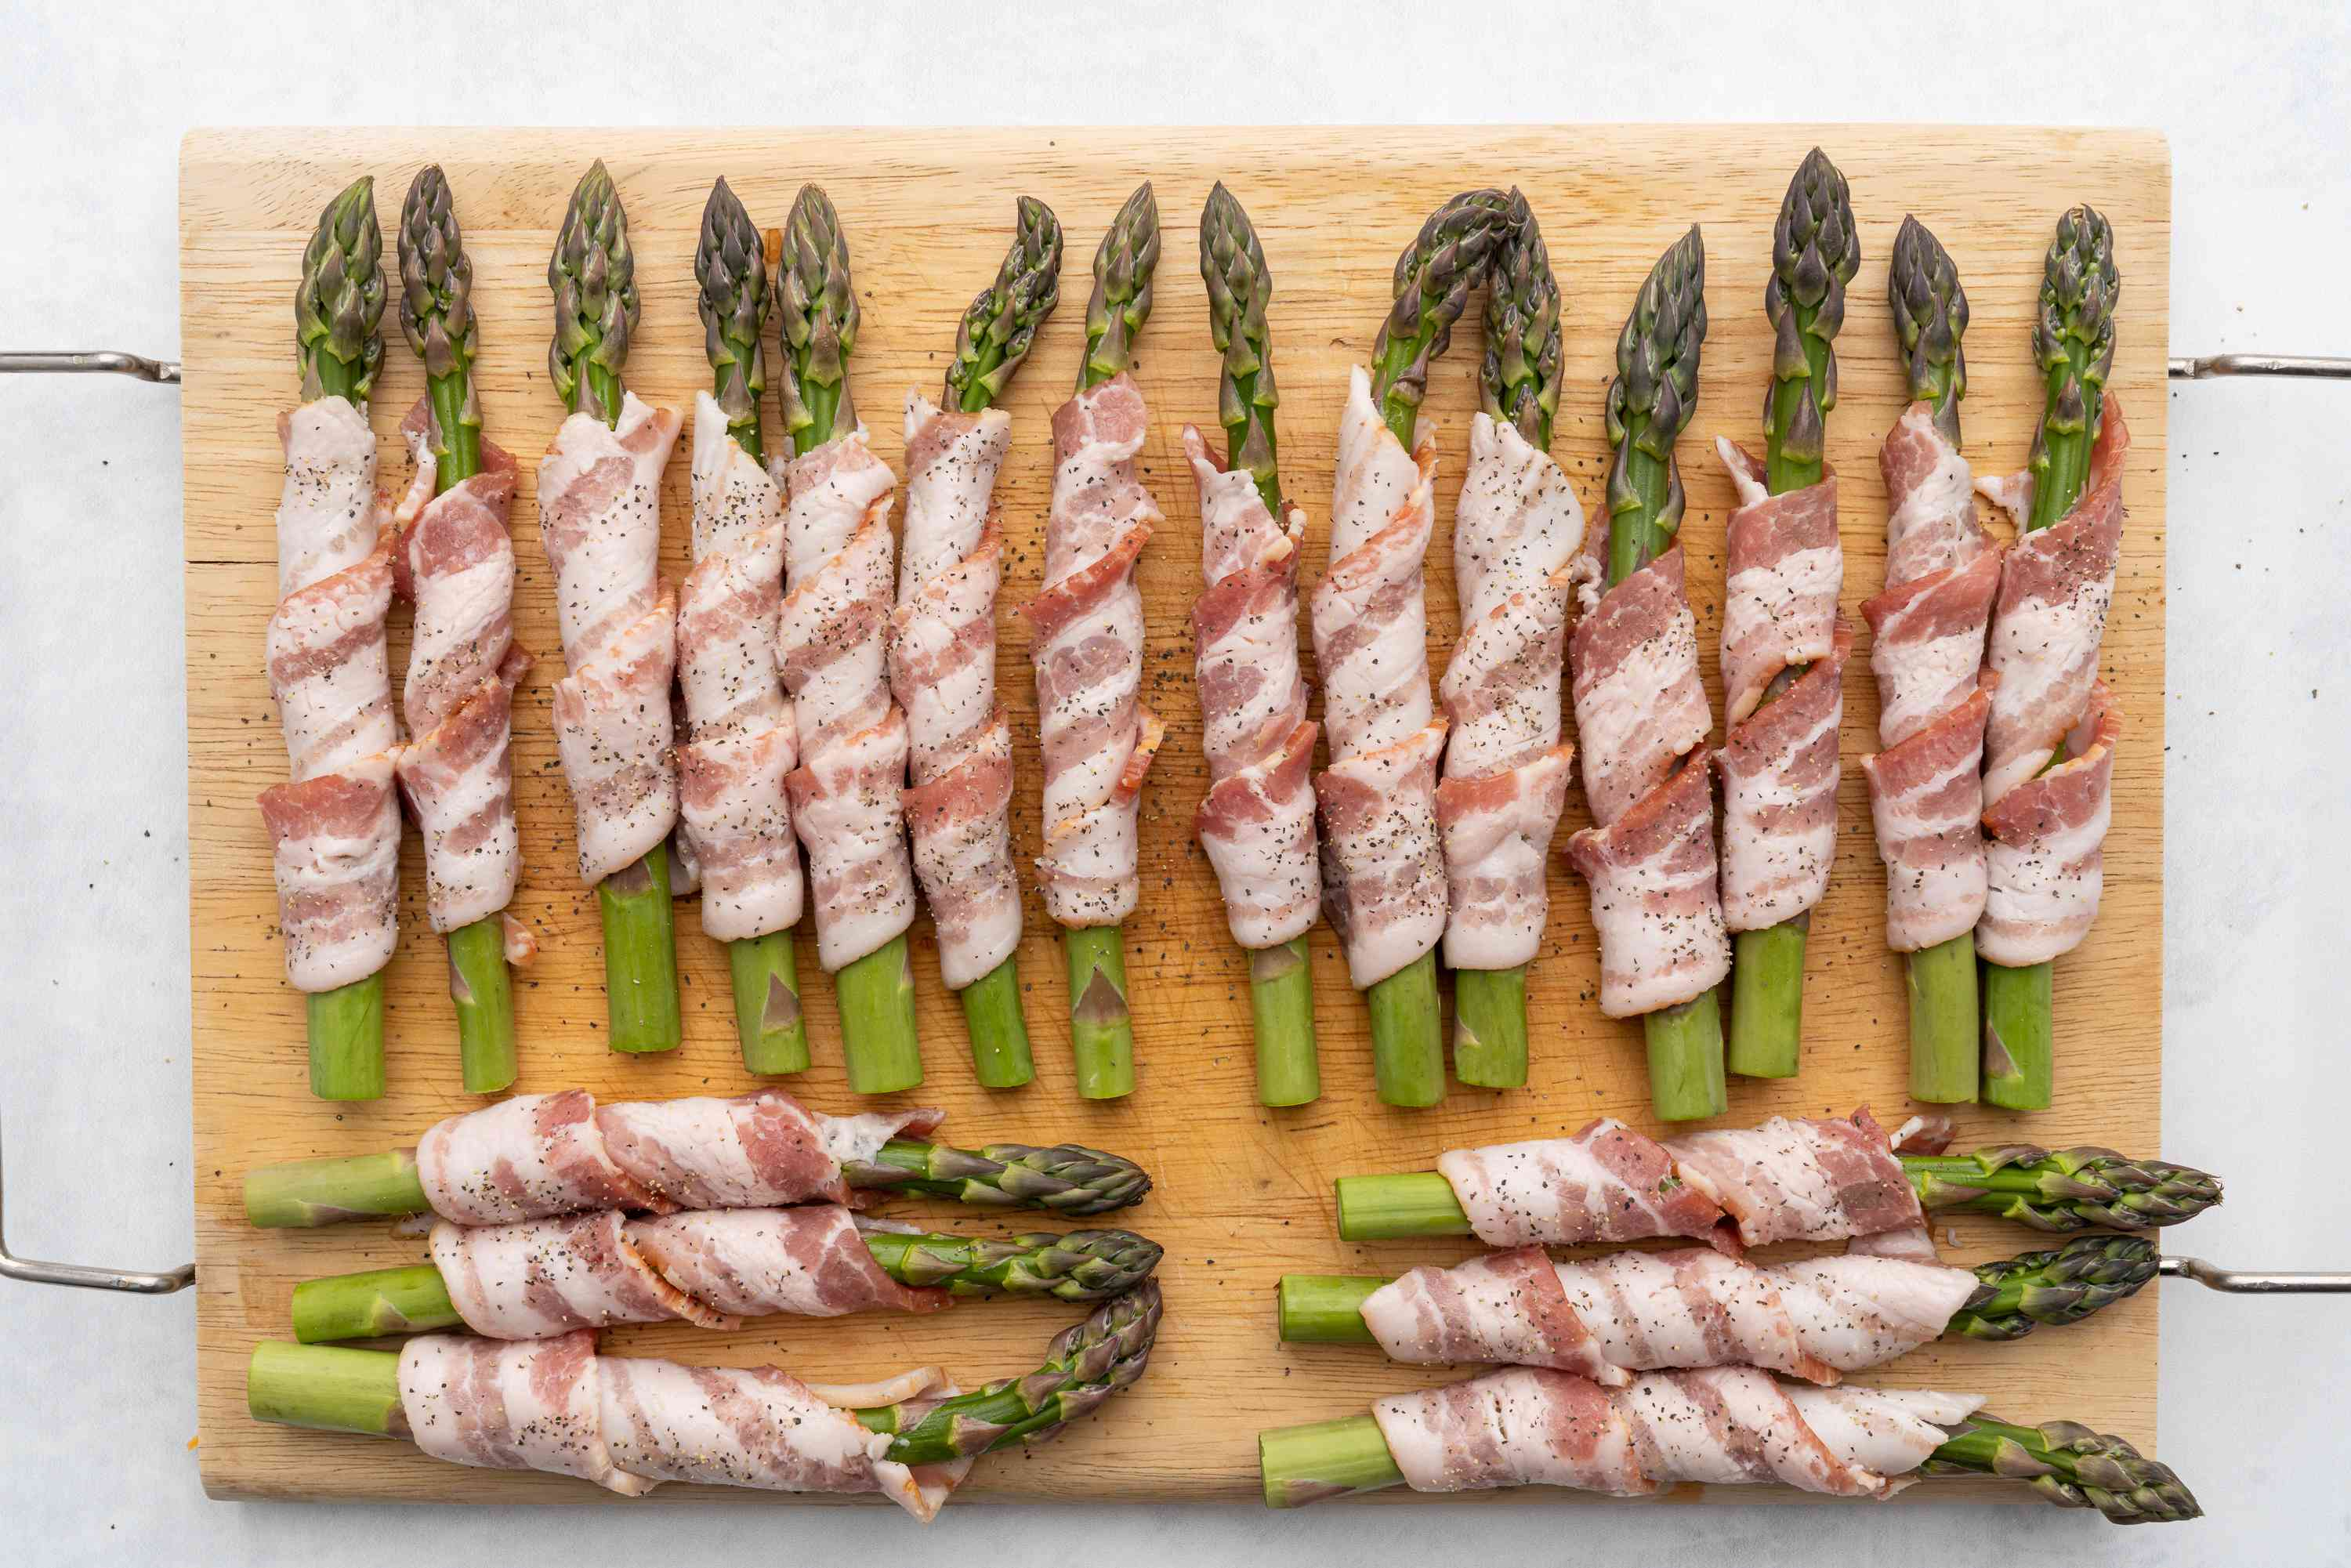 Bacon Wrapped Asparagus seasoned with pepper